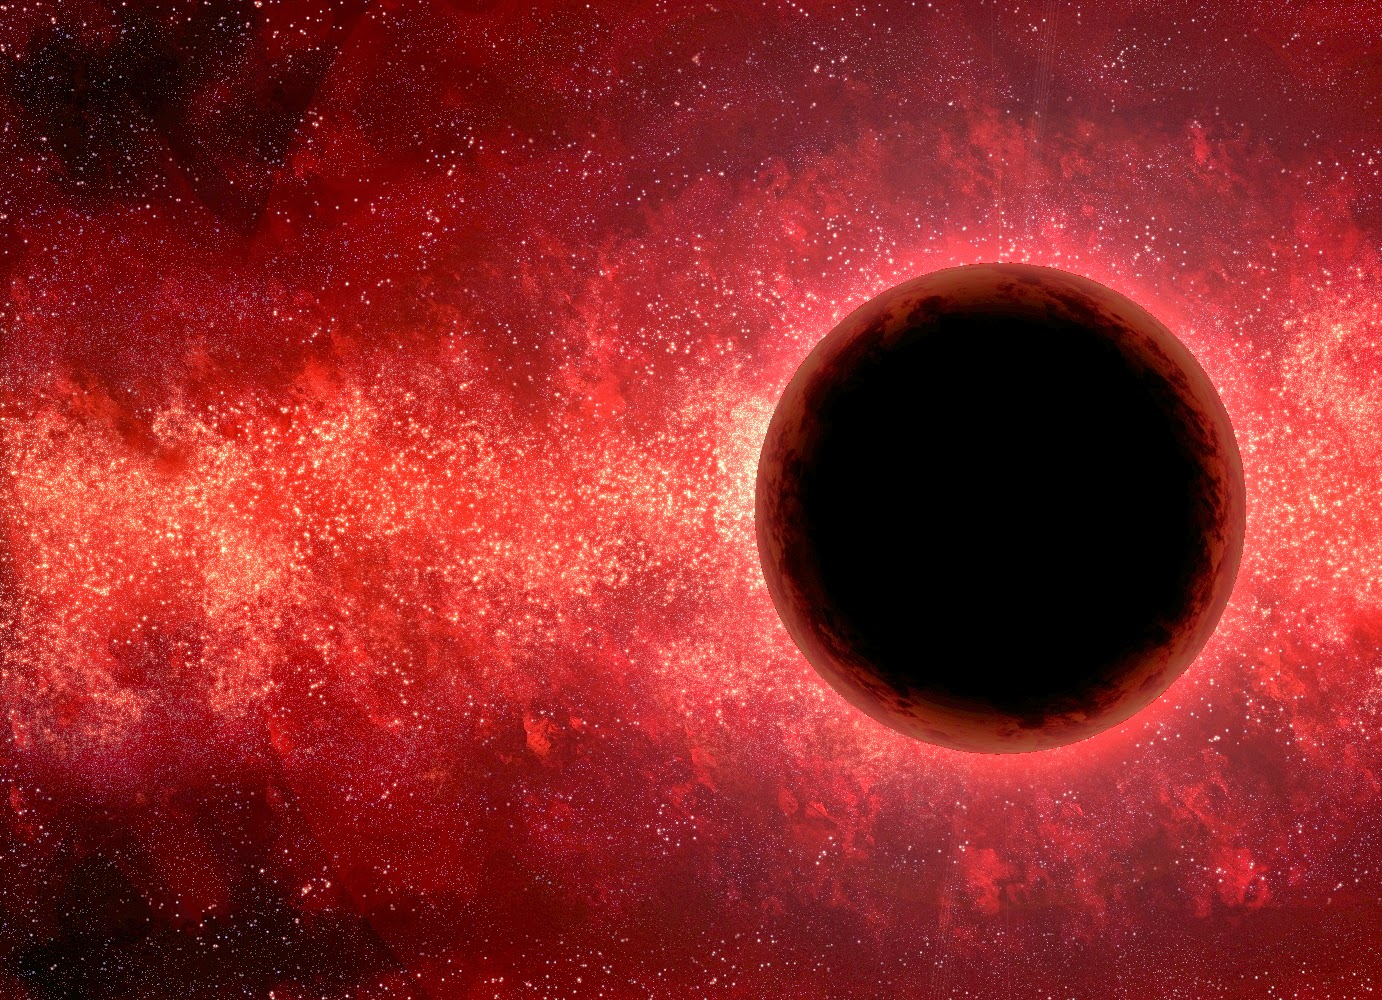 Black, dark red, and a starfield